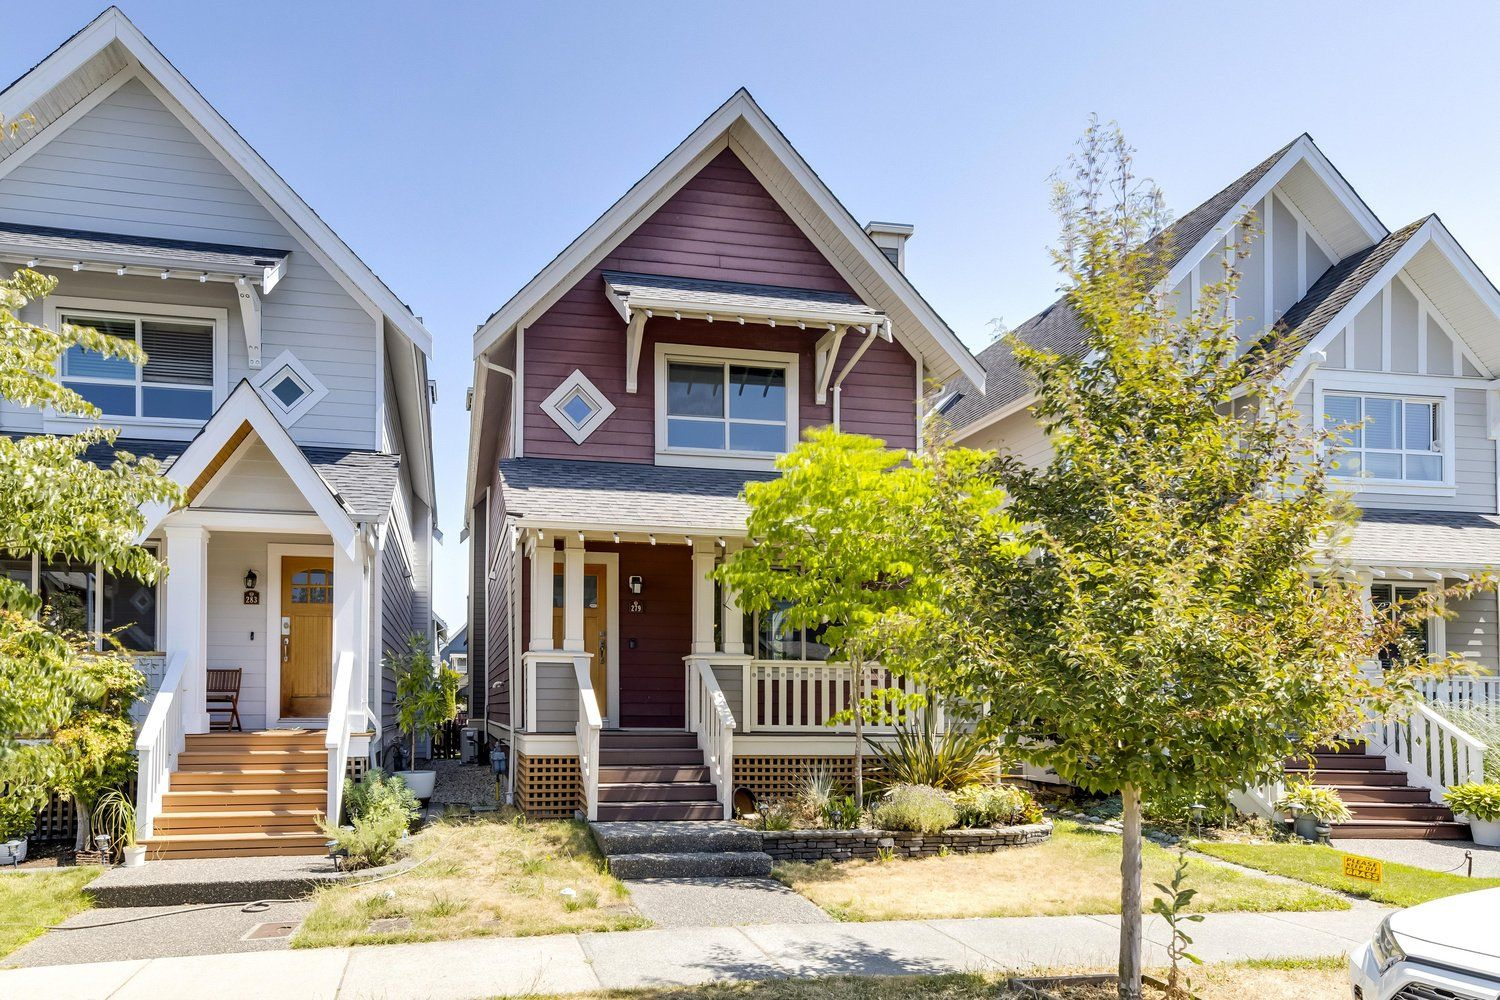 Main Photo: 279 FURNESS Street in New Westminster: Queensborough House for sale : MLS®# R2602213